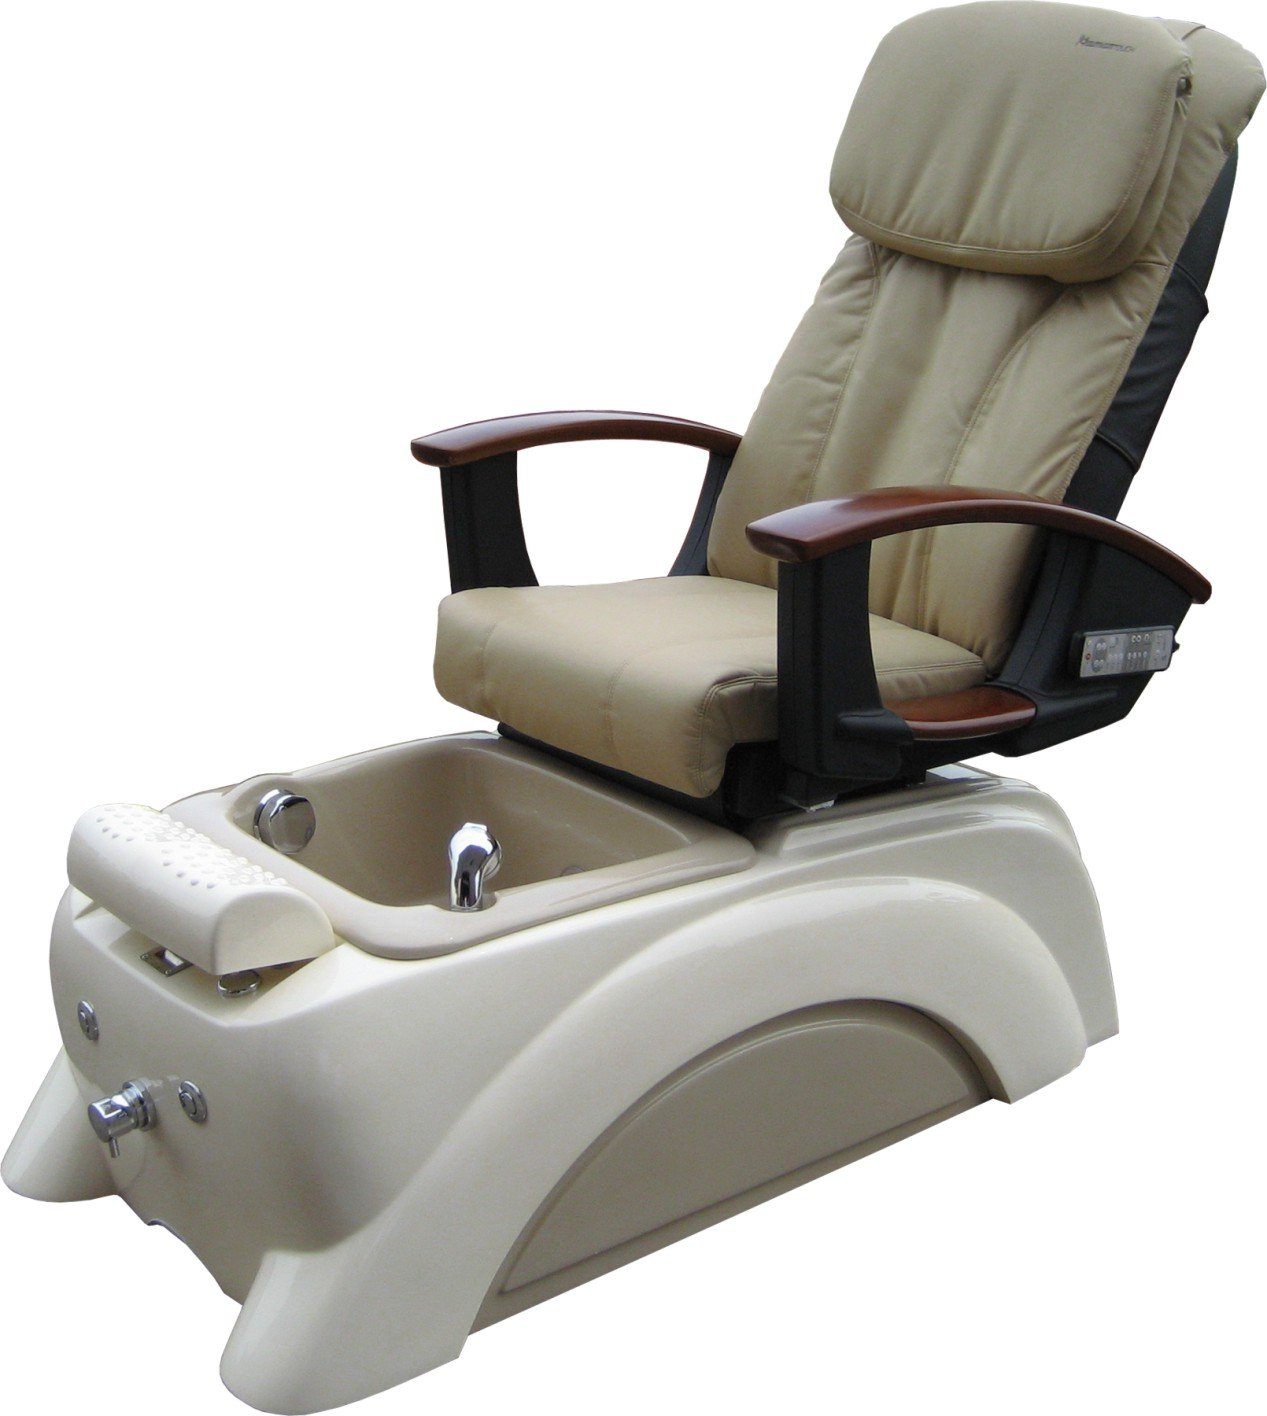 spa pedi clients around sold africa pedicure chairs to south chair